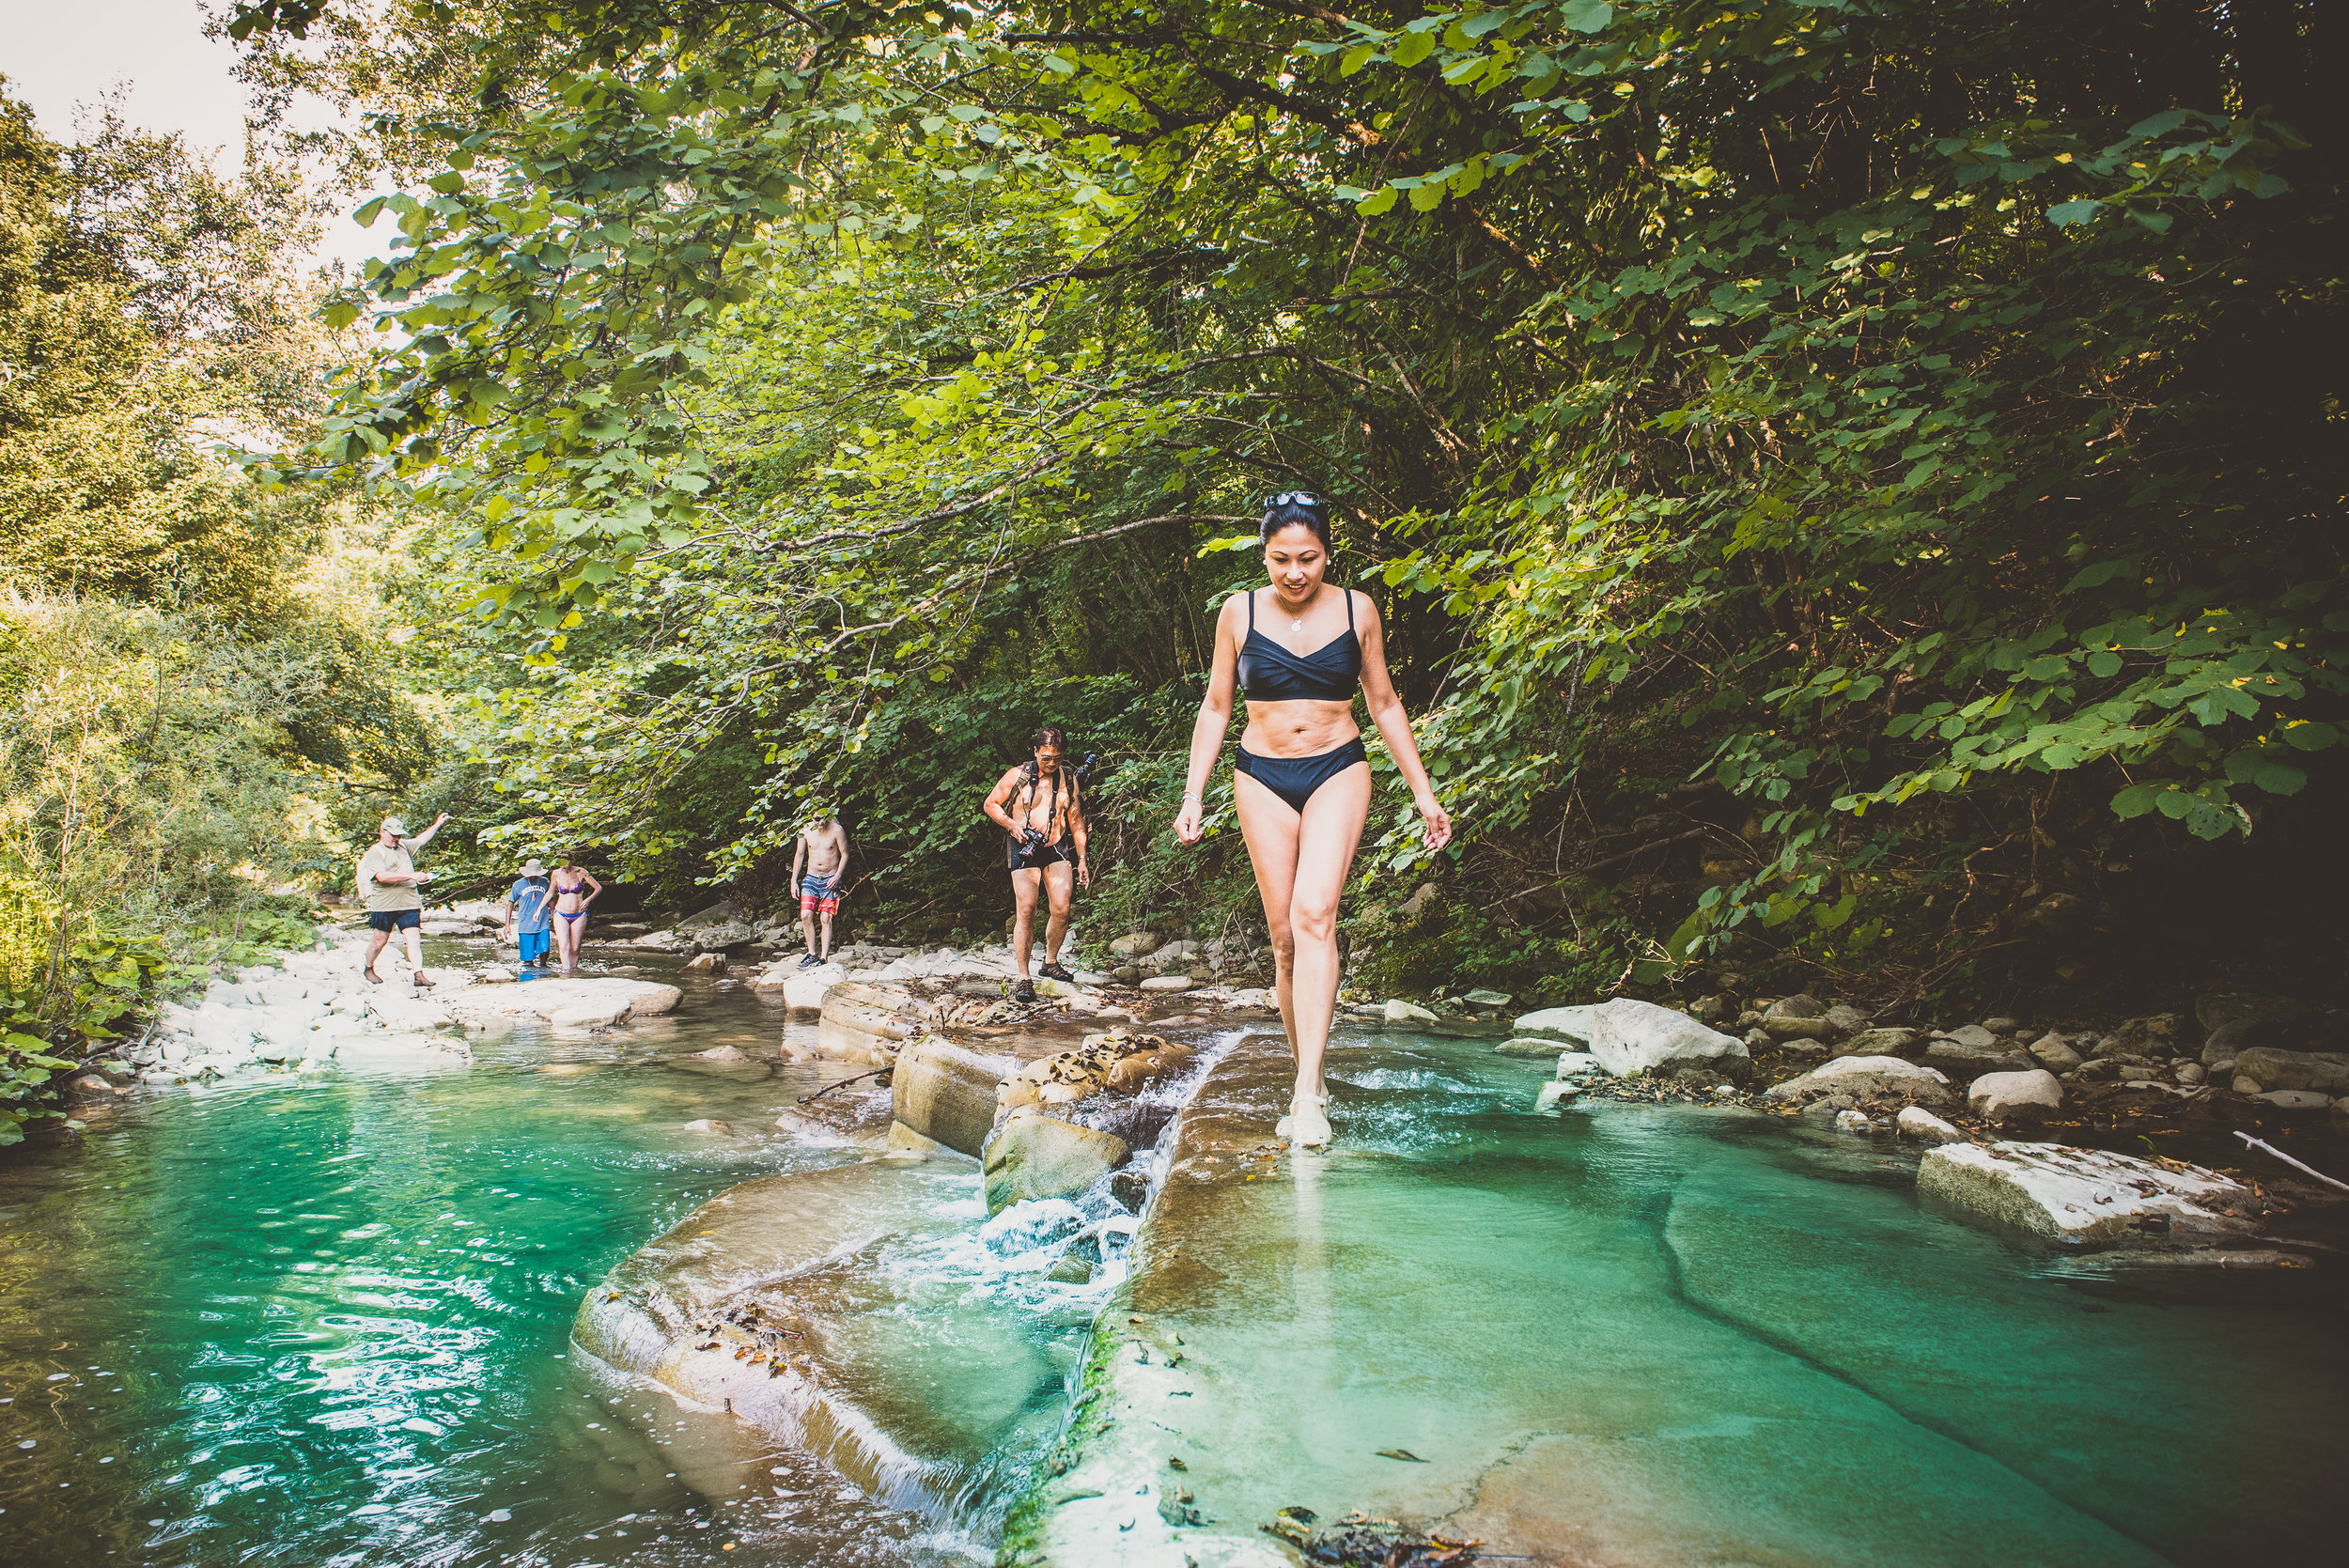 River Swimming - Trek through blue lagoons and navigate miniature waterfalls as we get our feet wet and learn the history of the area. Traditional Italian merenda to follow in a truly off-the-beaten-path location!